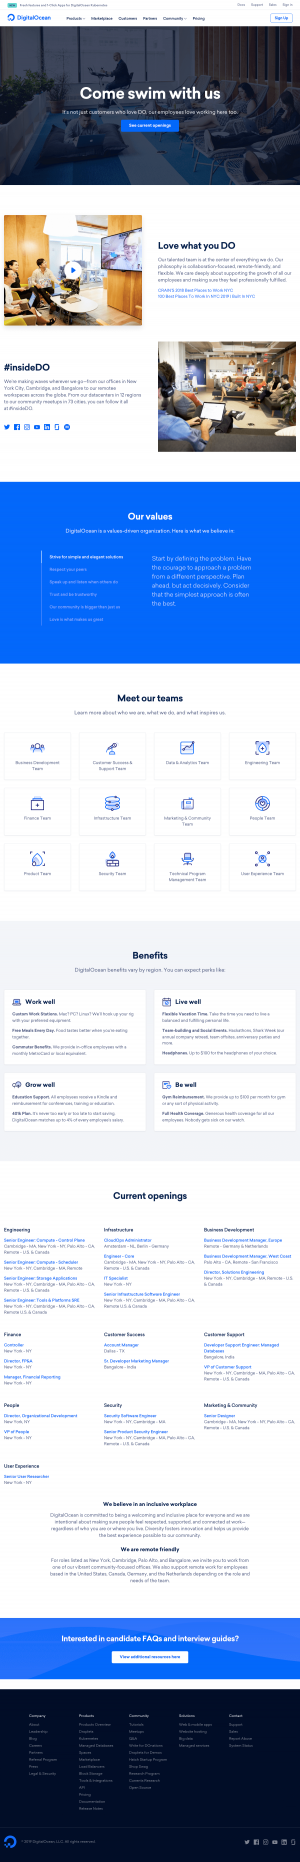 DigitalOcean - Career page